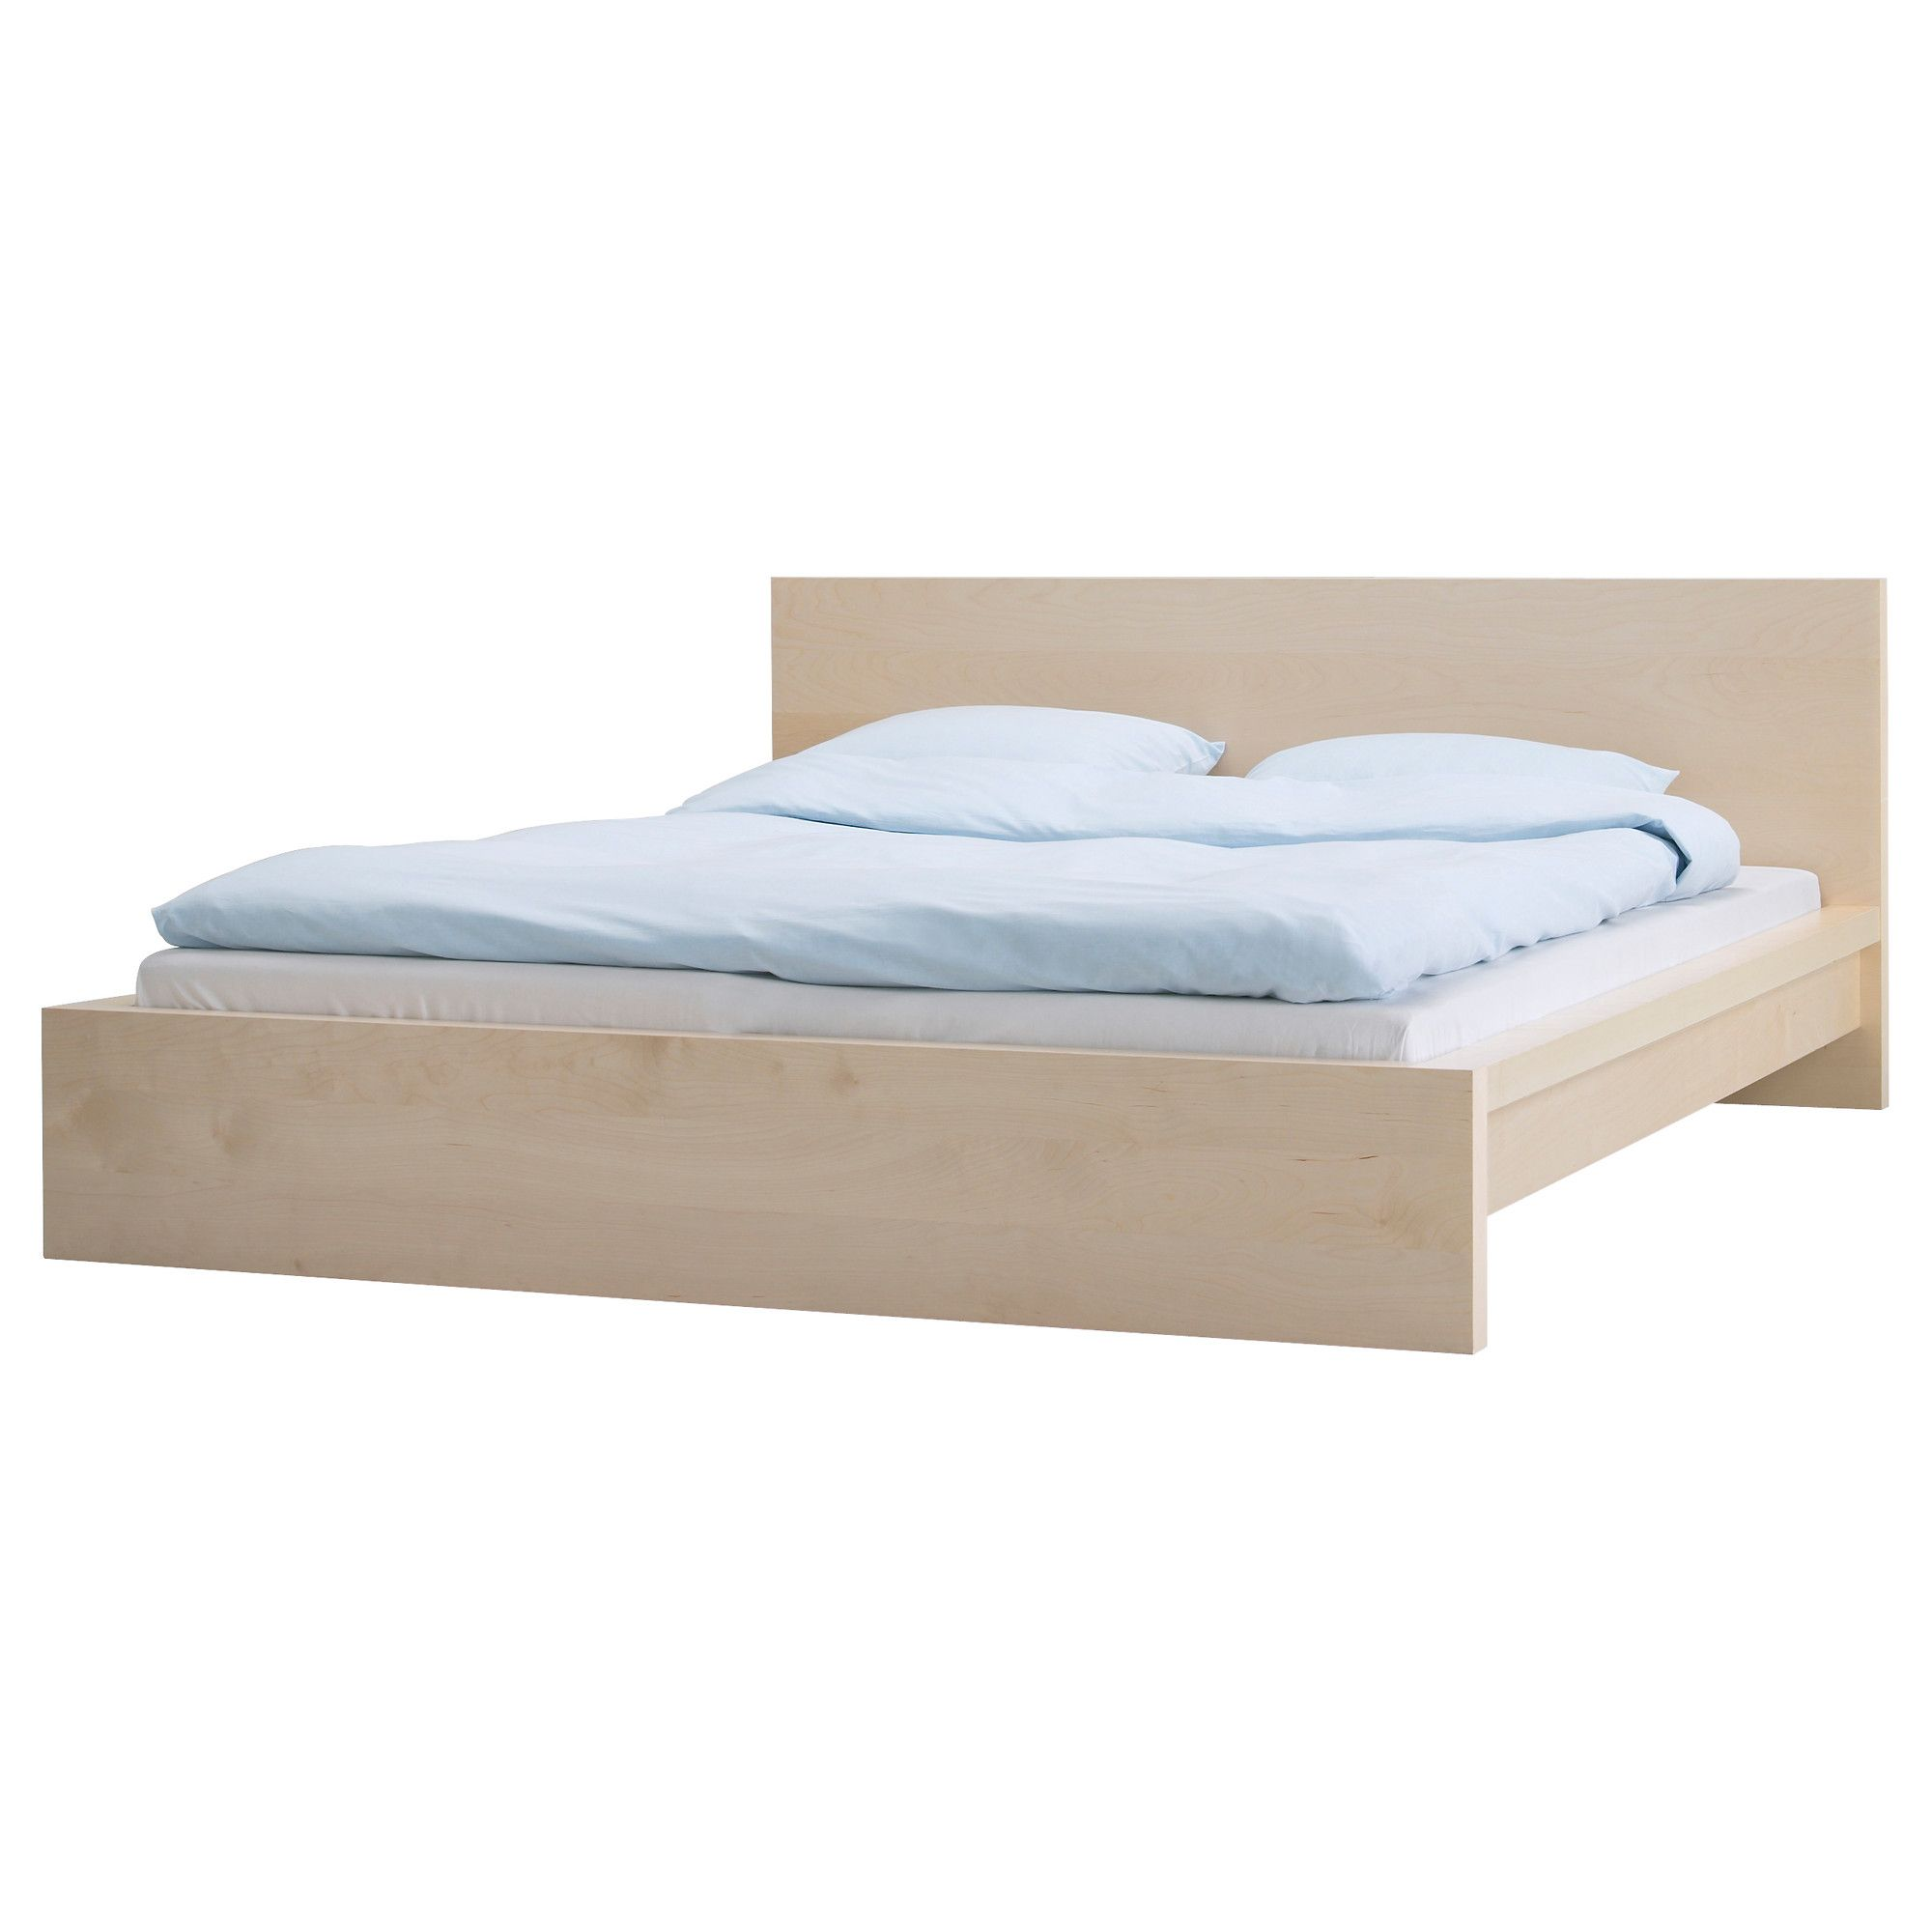 Ikea Us Furniture And Home Furnishings Malm Bed Malm Bed